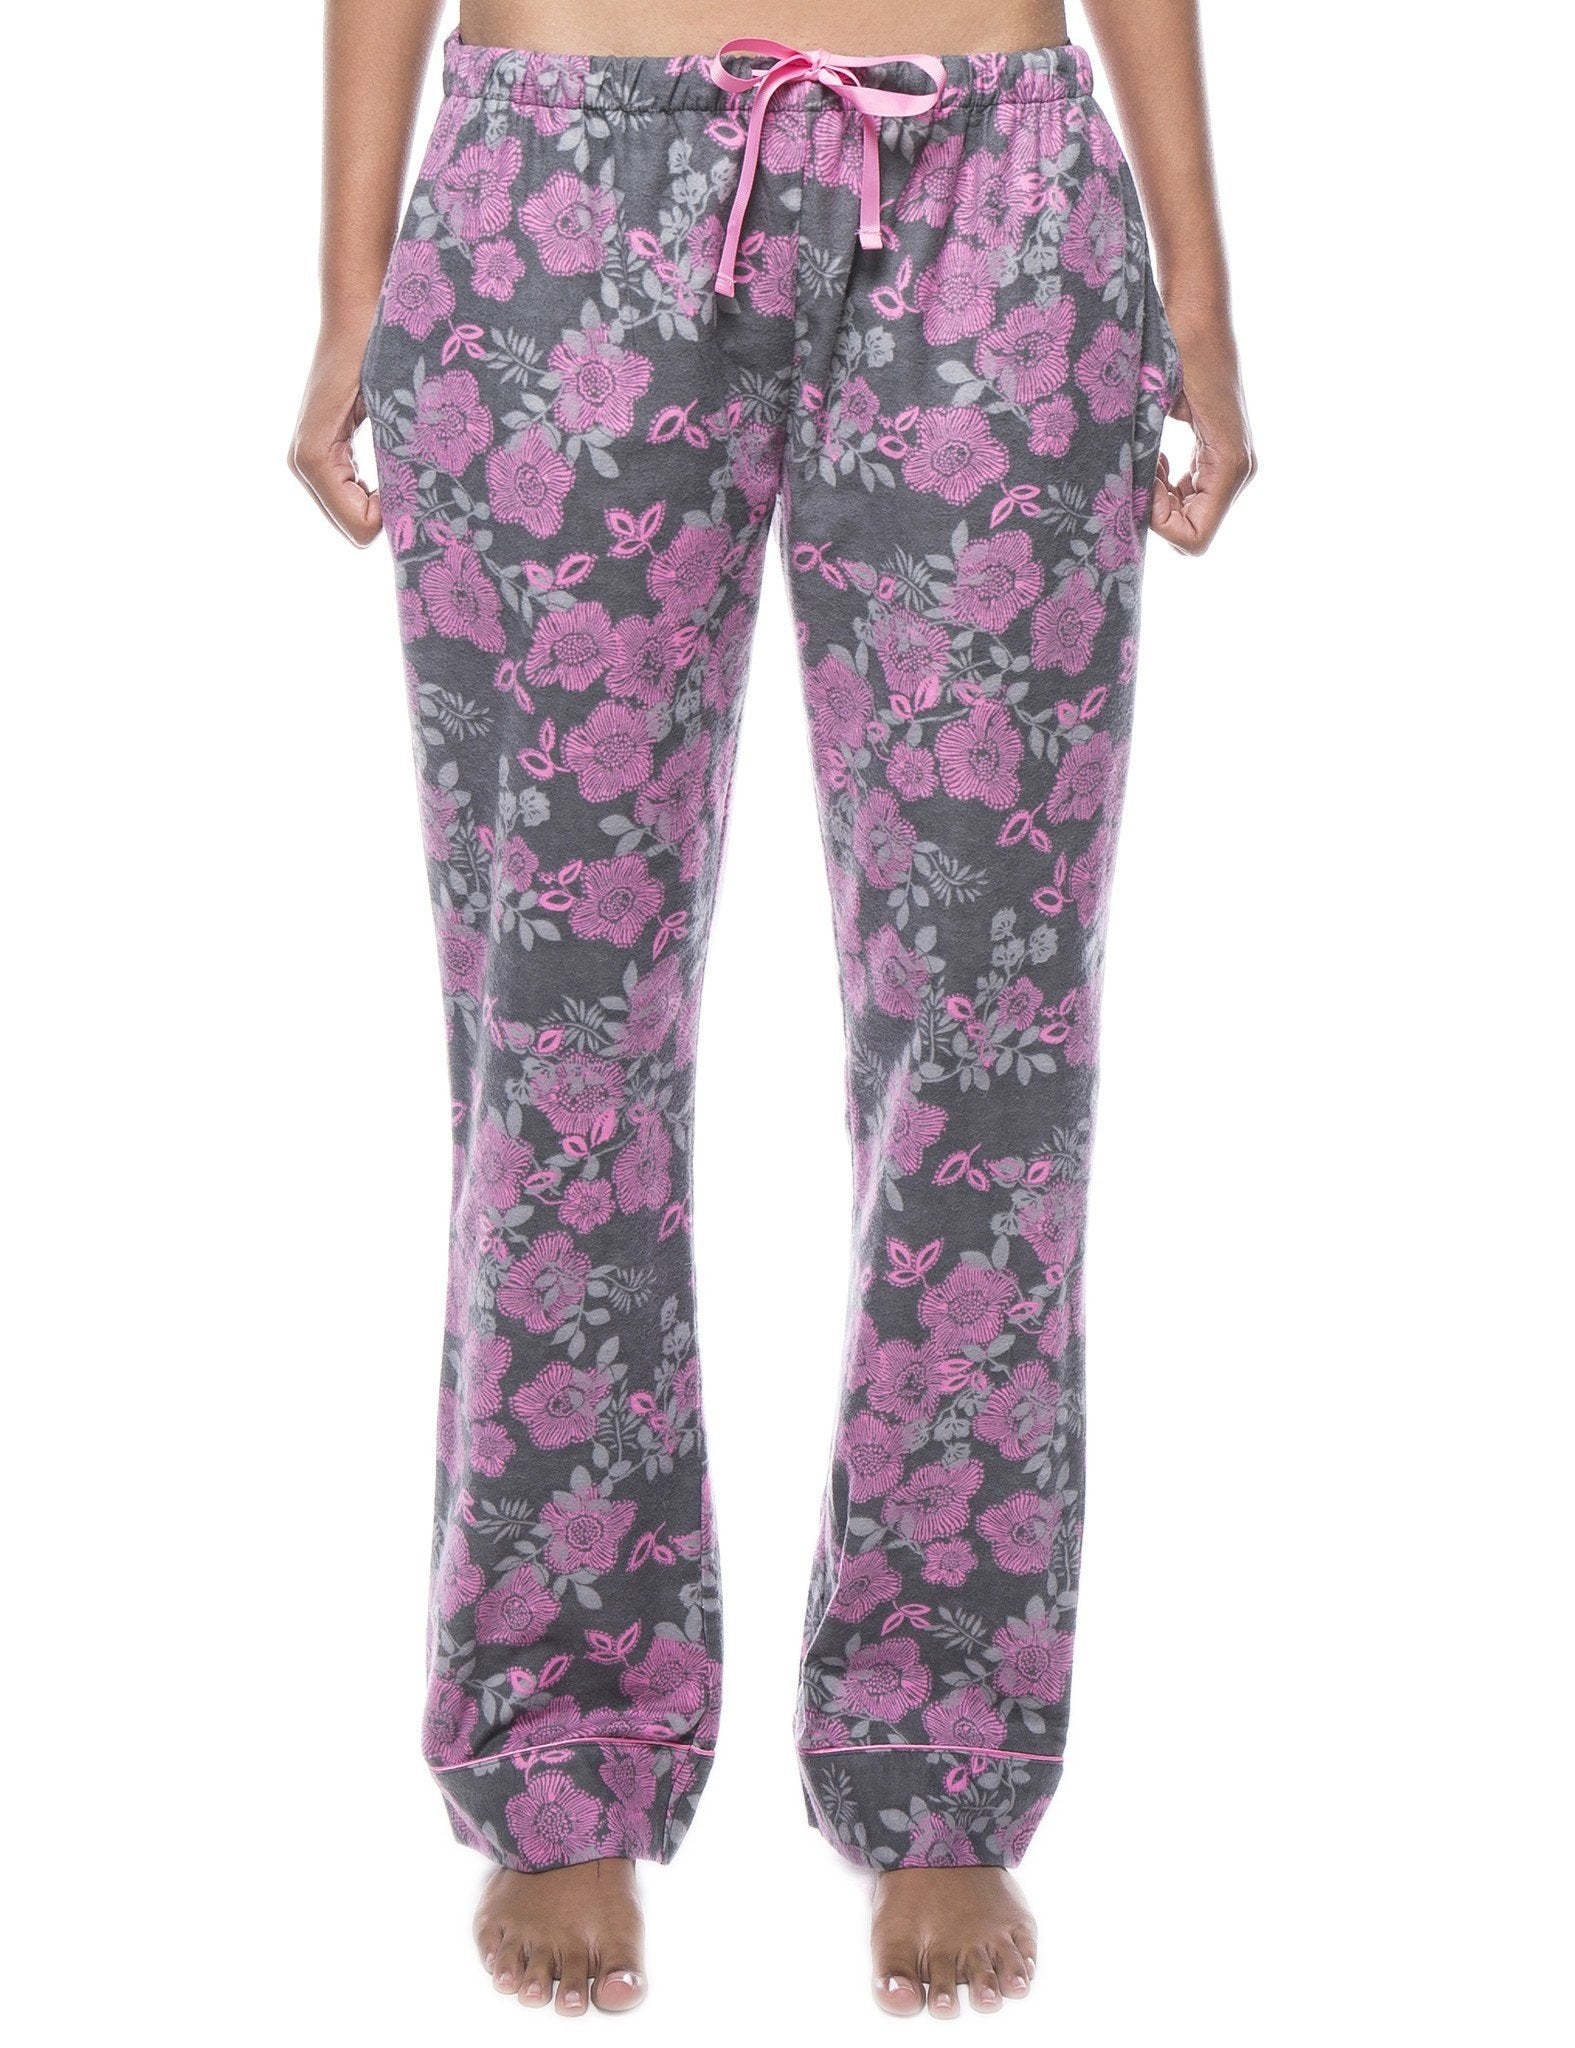 Womens 100% Cotton Flannel Lounge Pants - Floral Grey/Pink